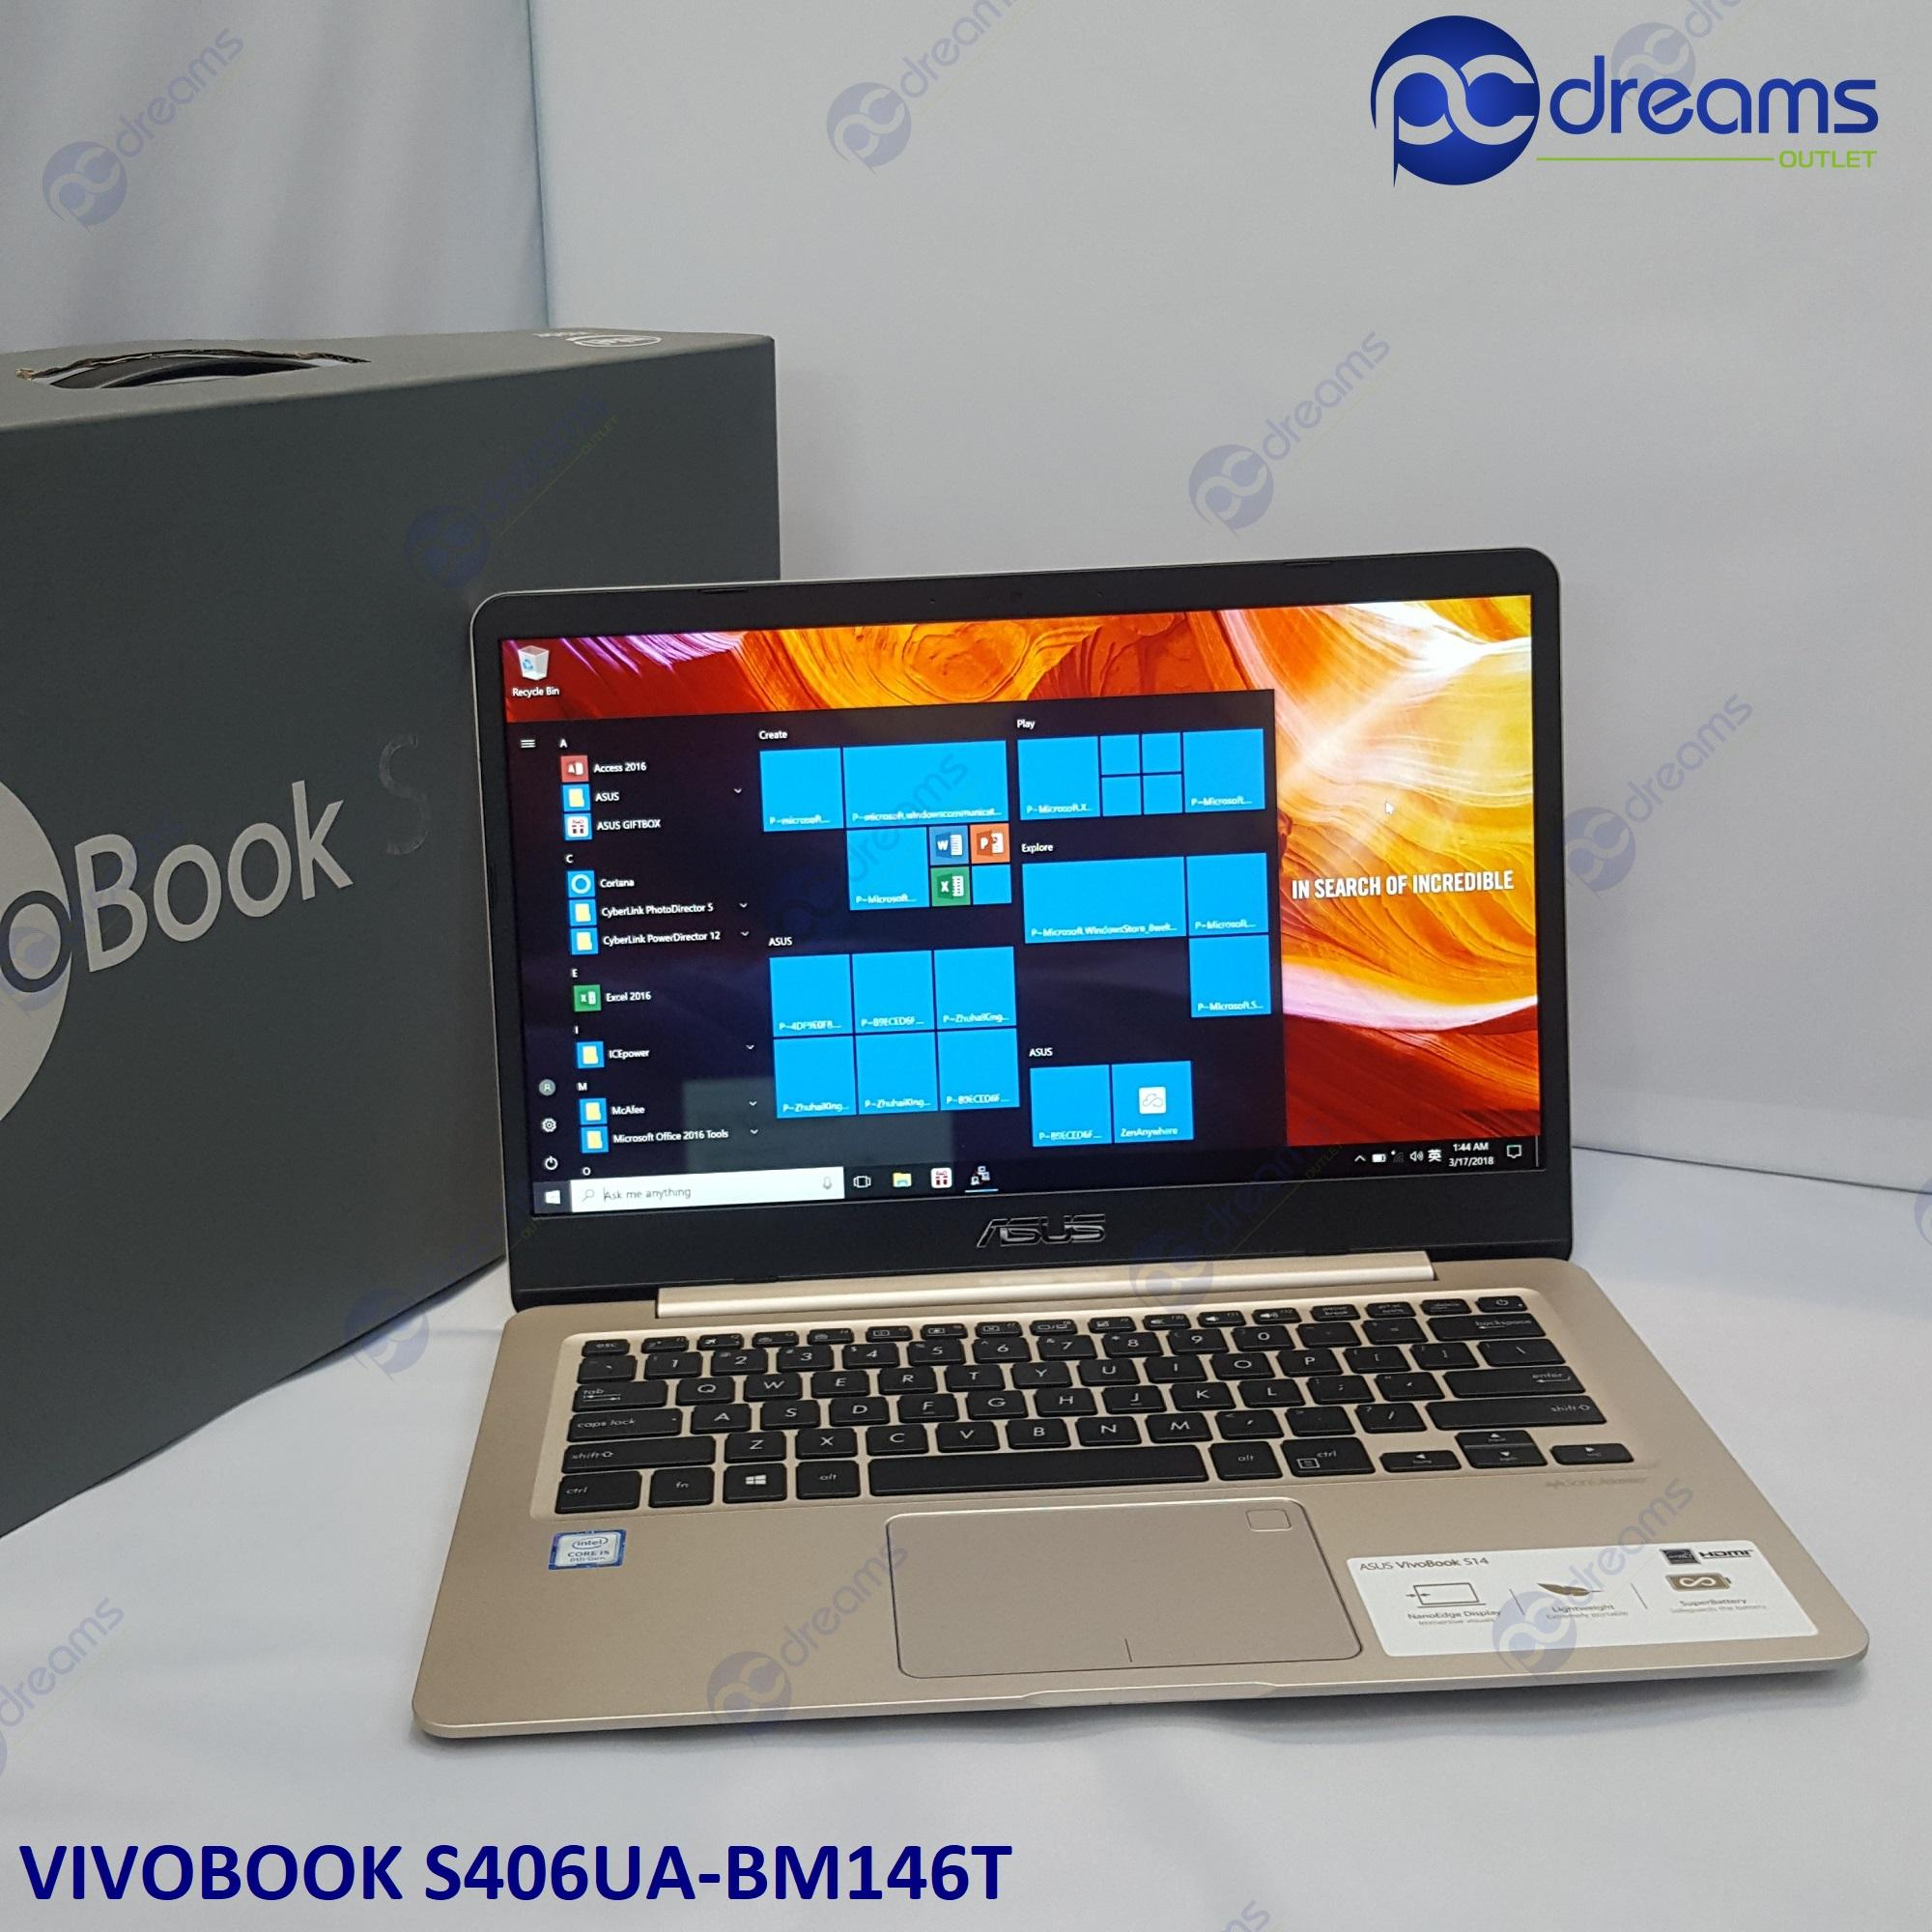 ASUS VIVOBOOK S406UA-BM146T i5-8250U/8GB/256GB SSD/14.0 FHD IPS [Premium Refreshed]